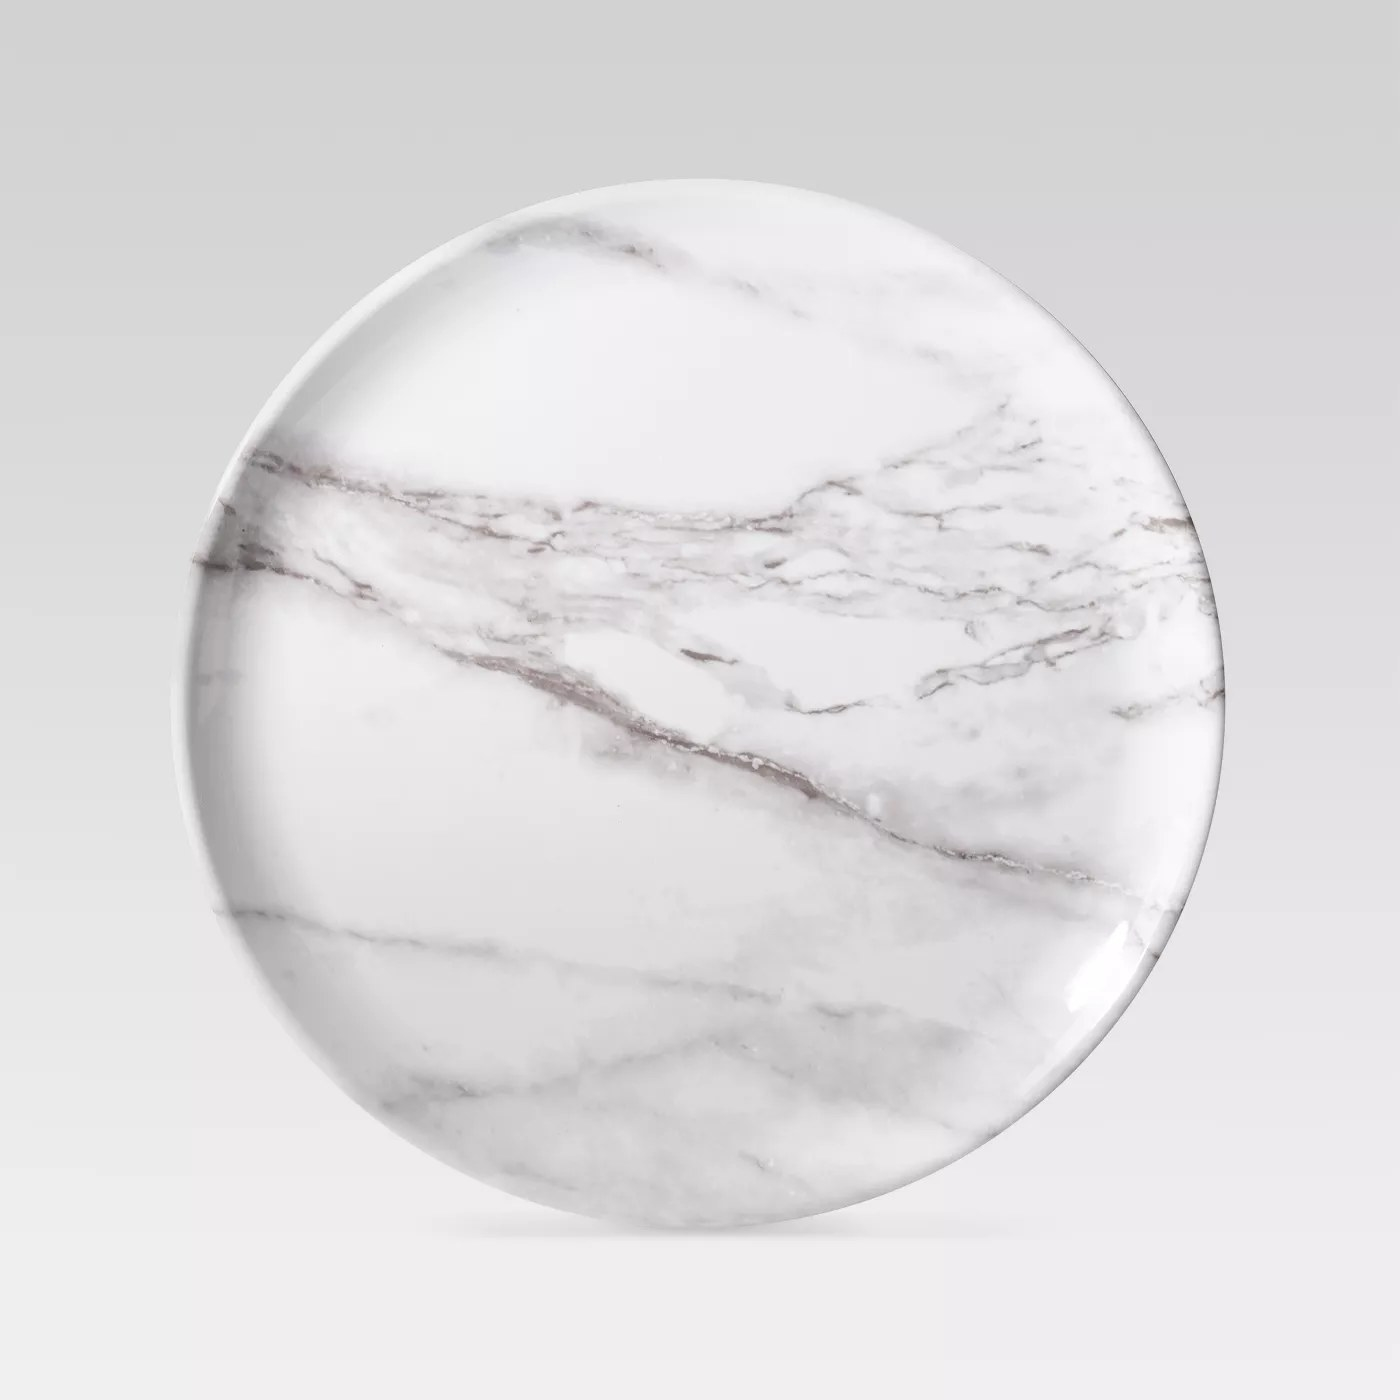 The marble serving platter